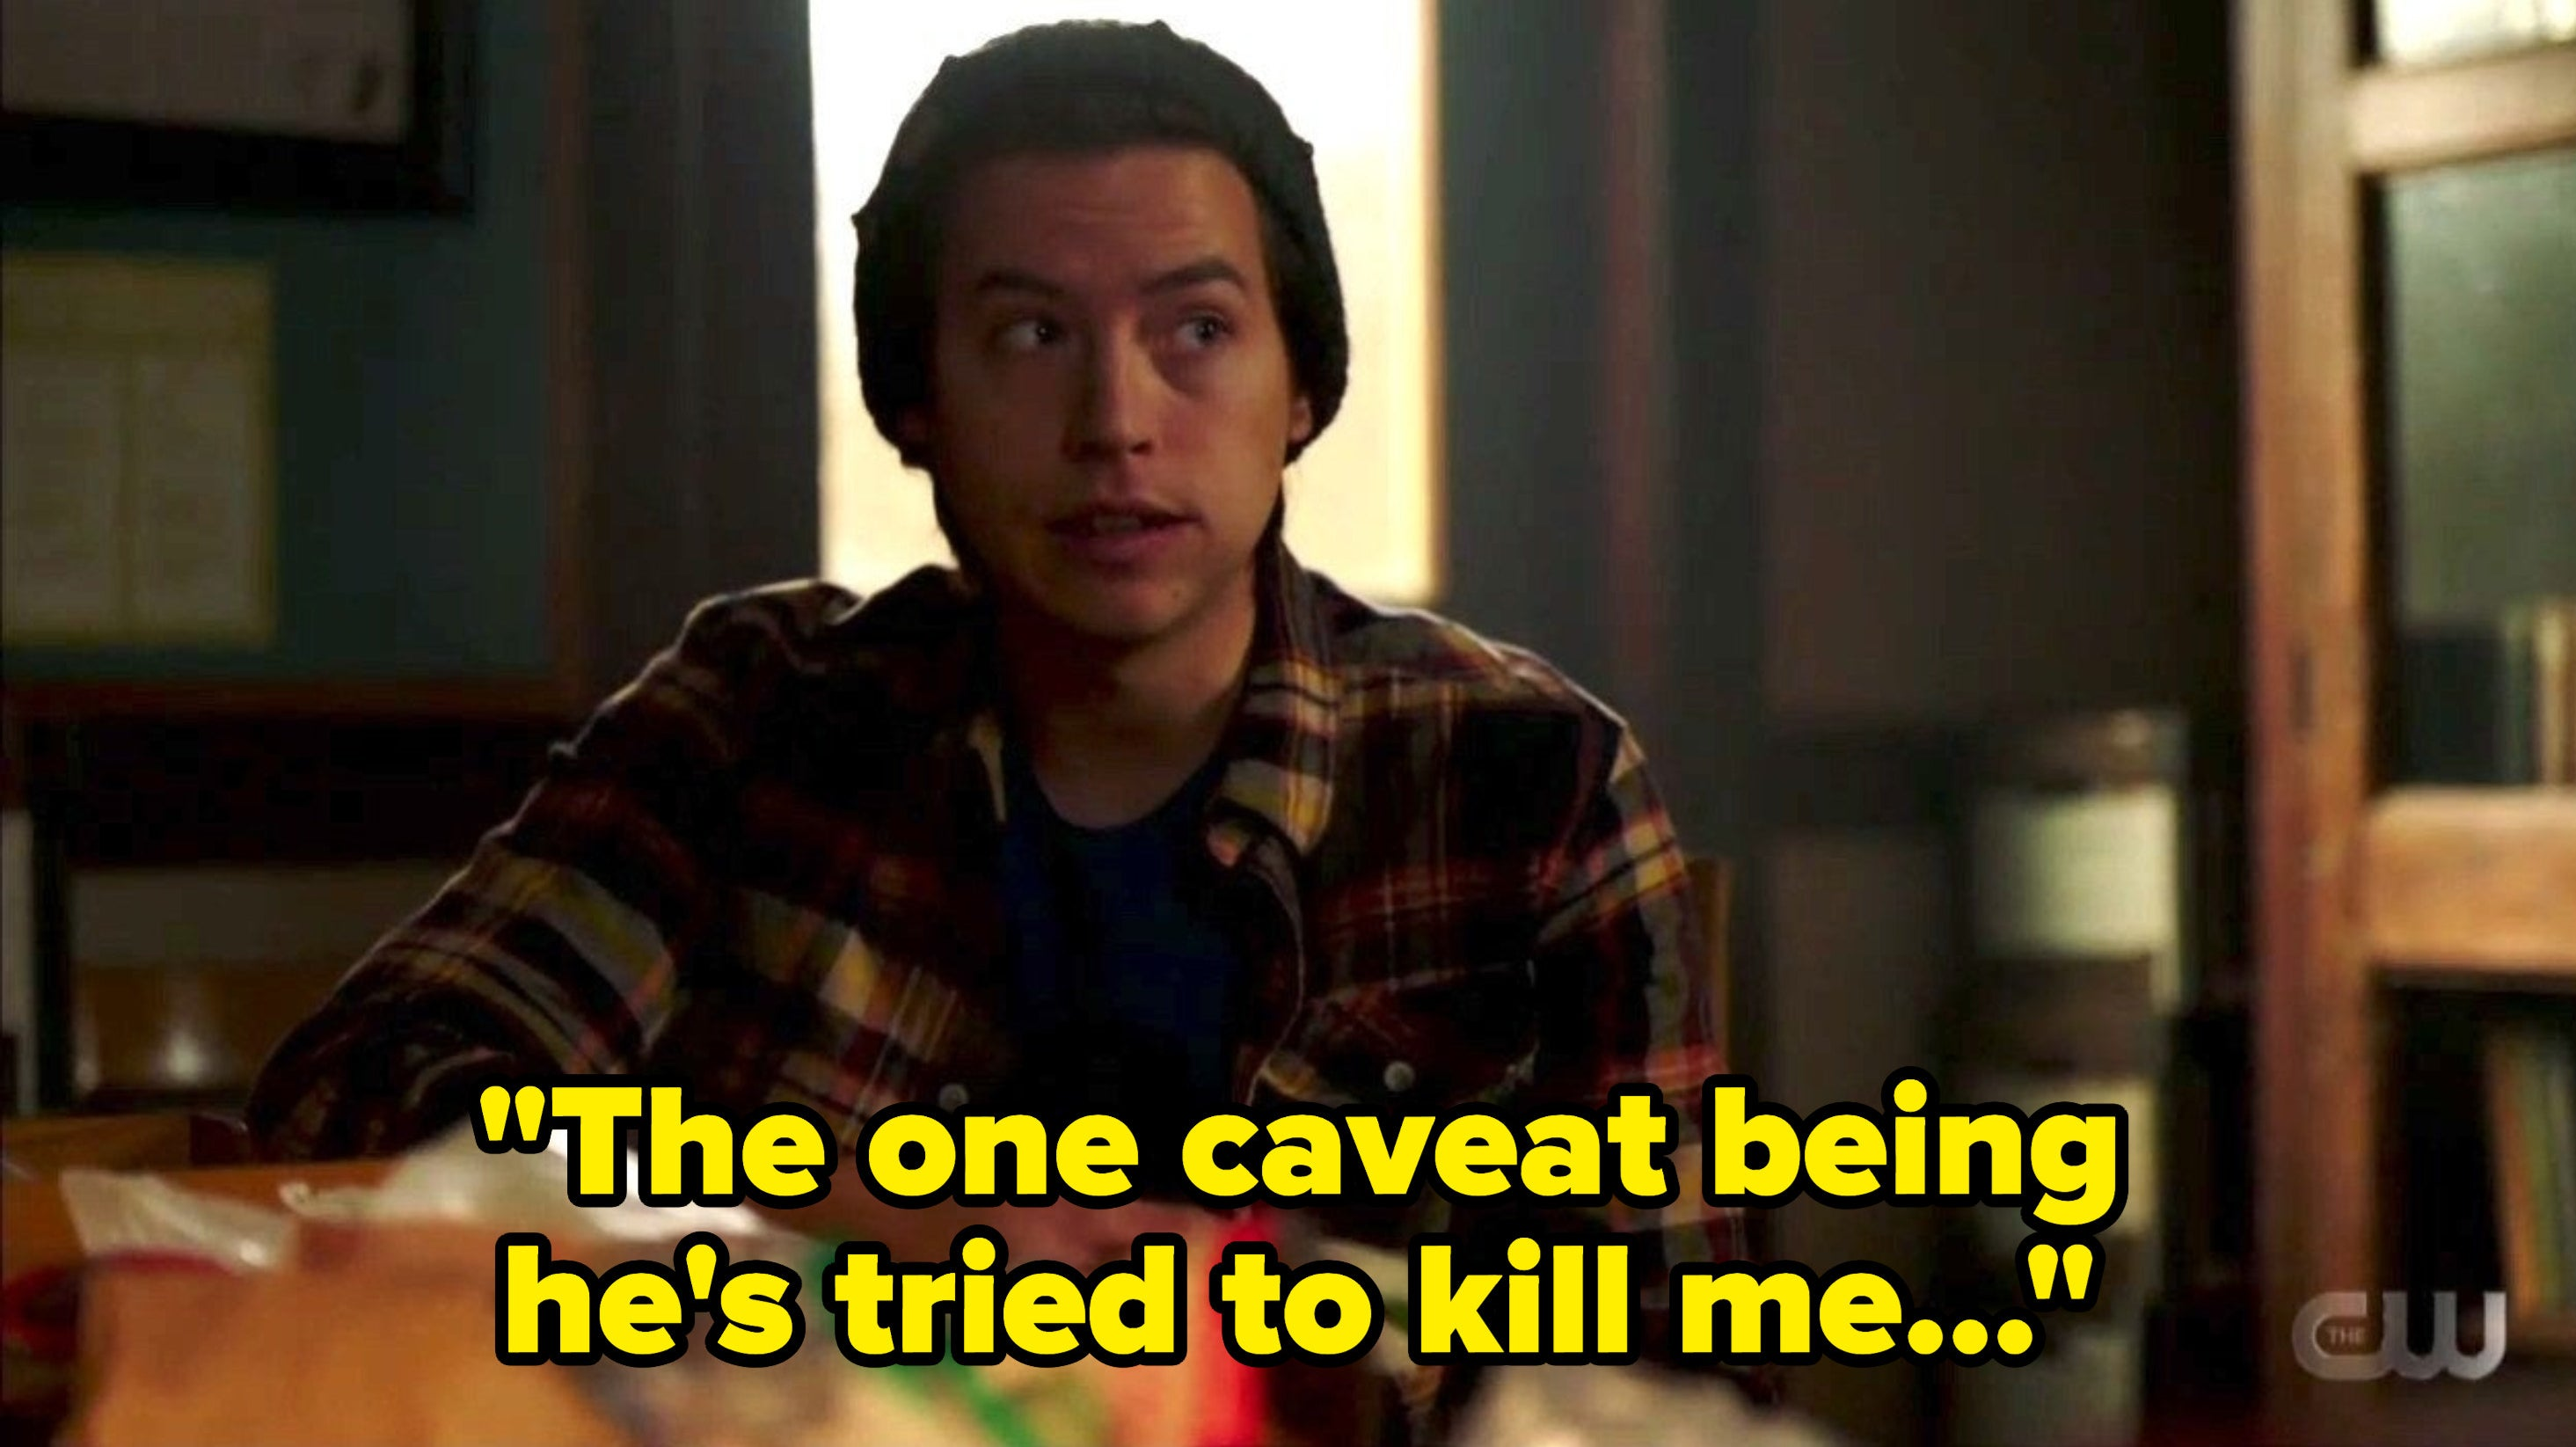 Jughead saying the one caveat being he's tried to kill me